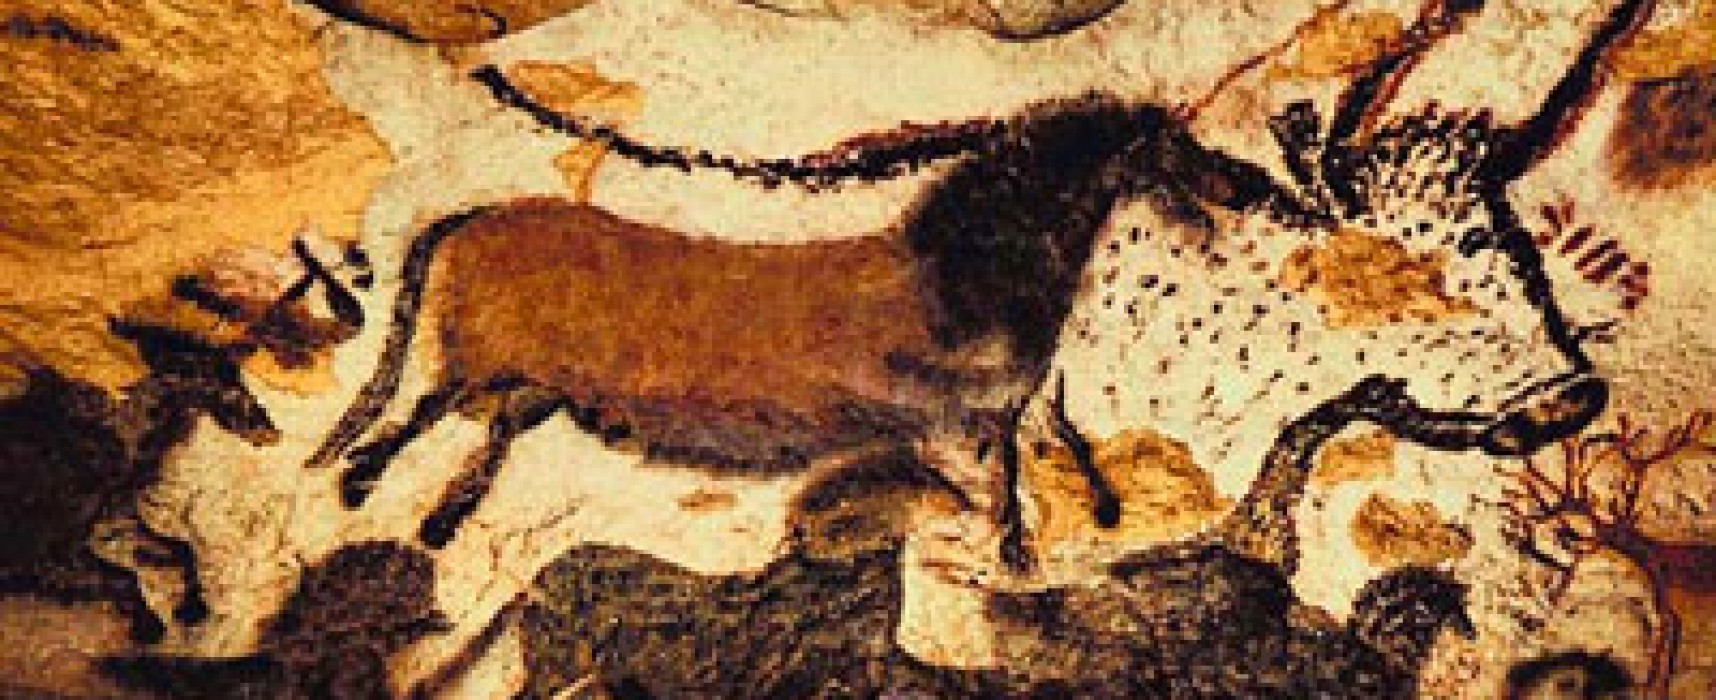 A Look into the Paleolithic Diet